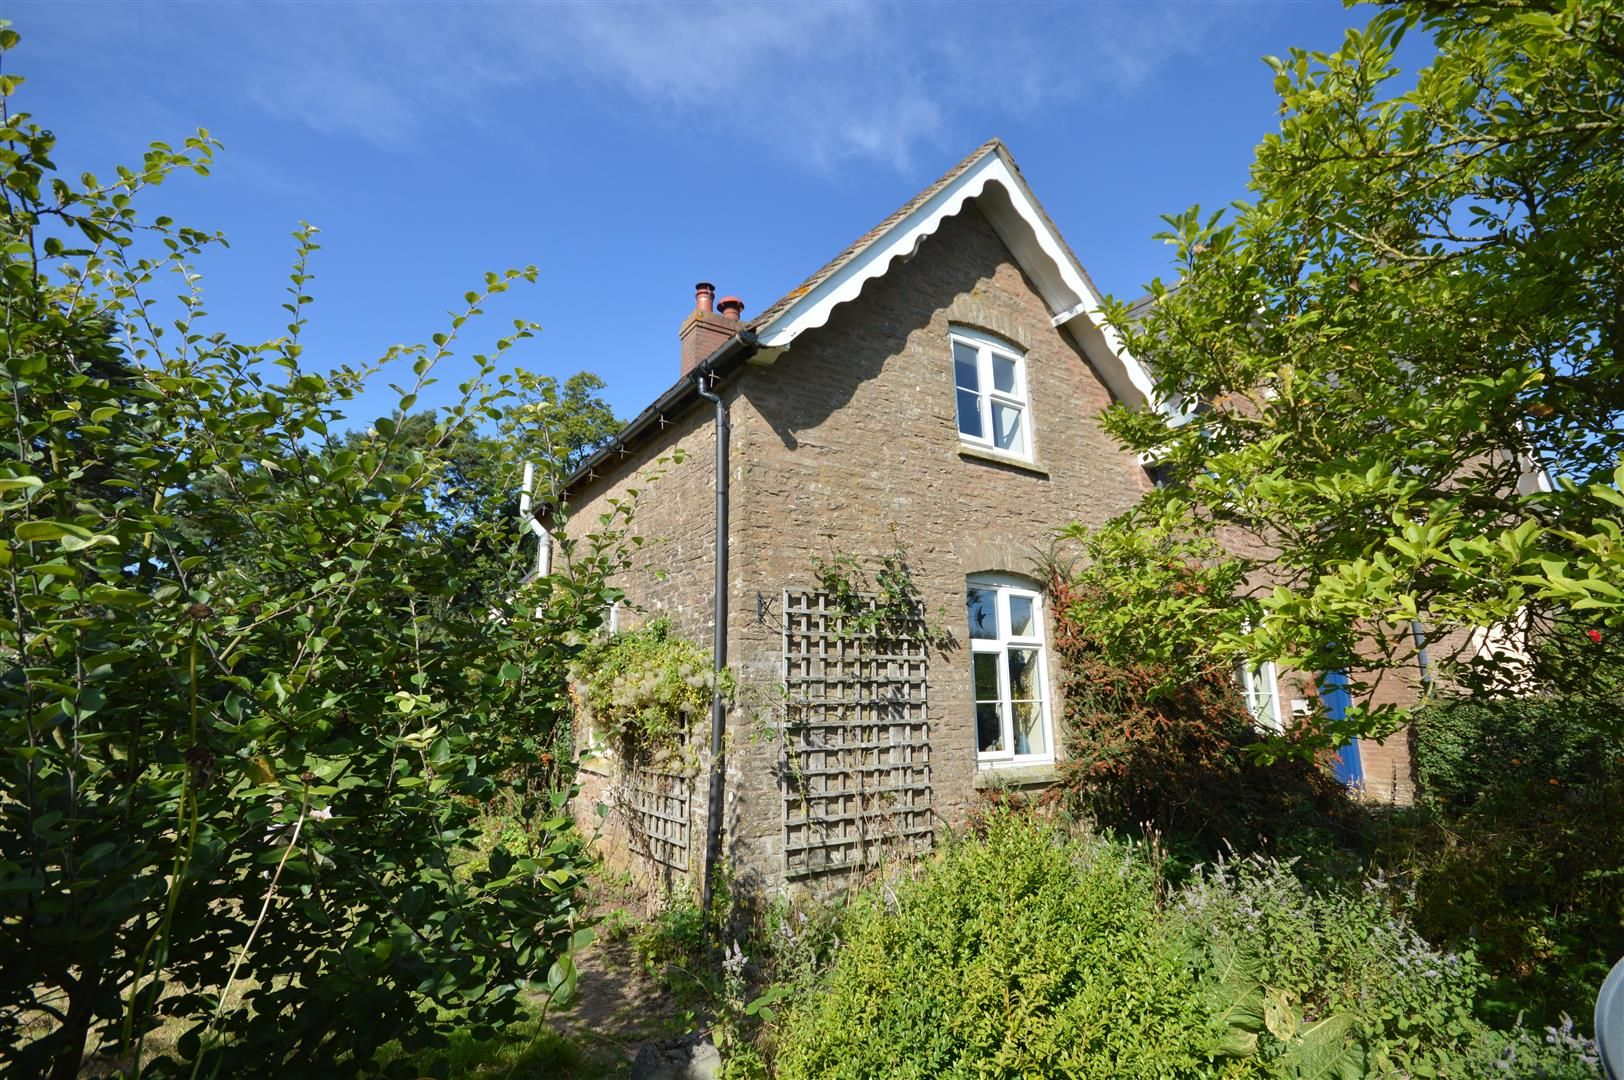 3 bed semi-detached for sale in Hatfield 1